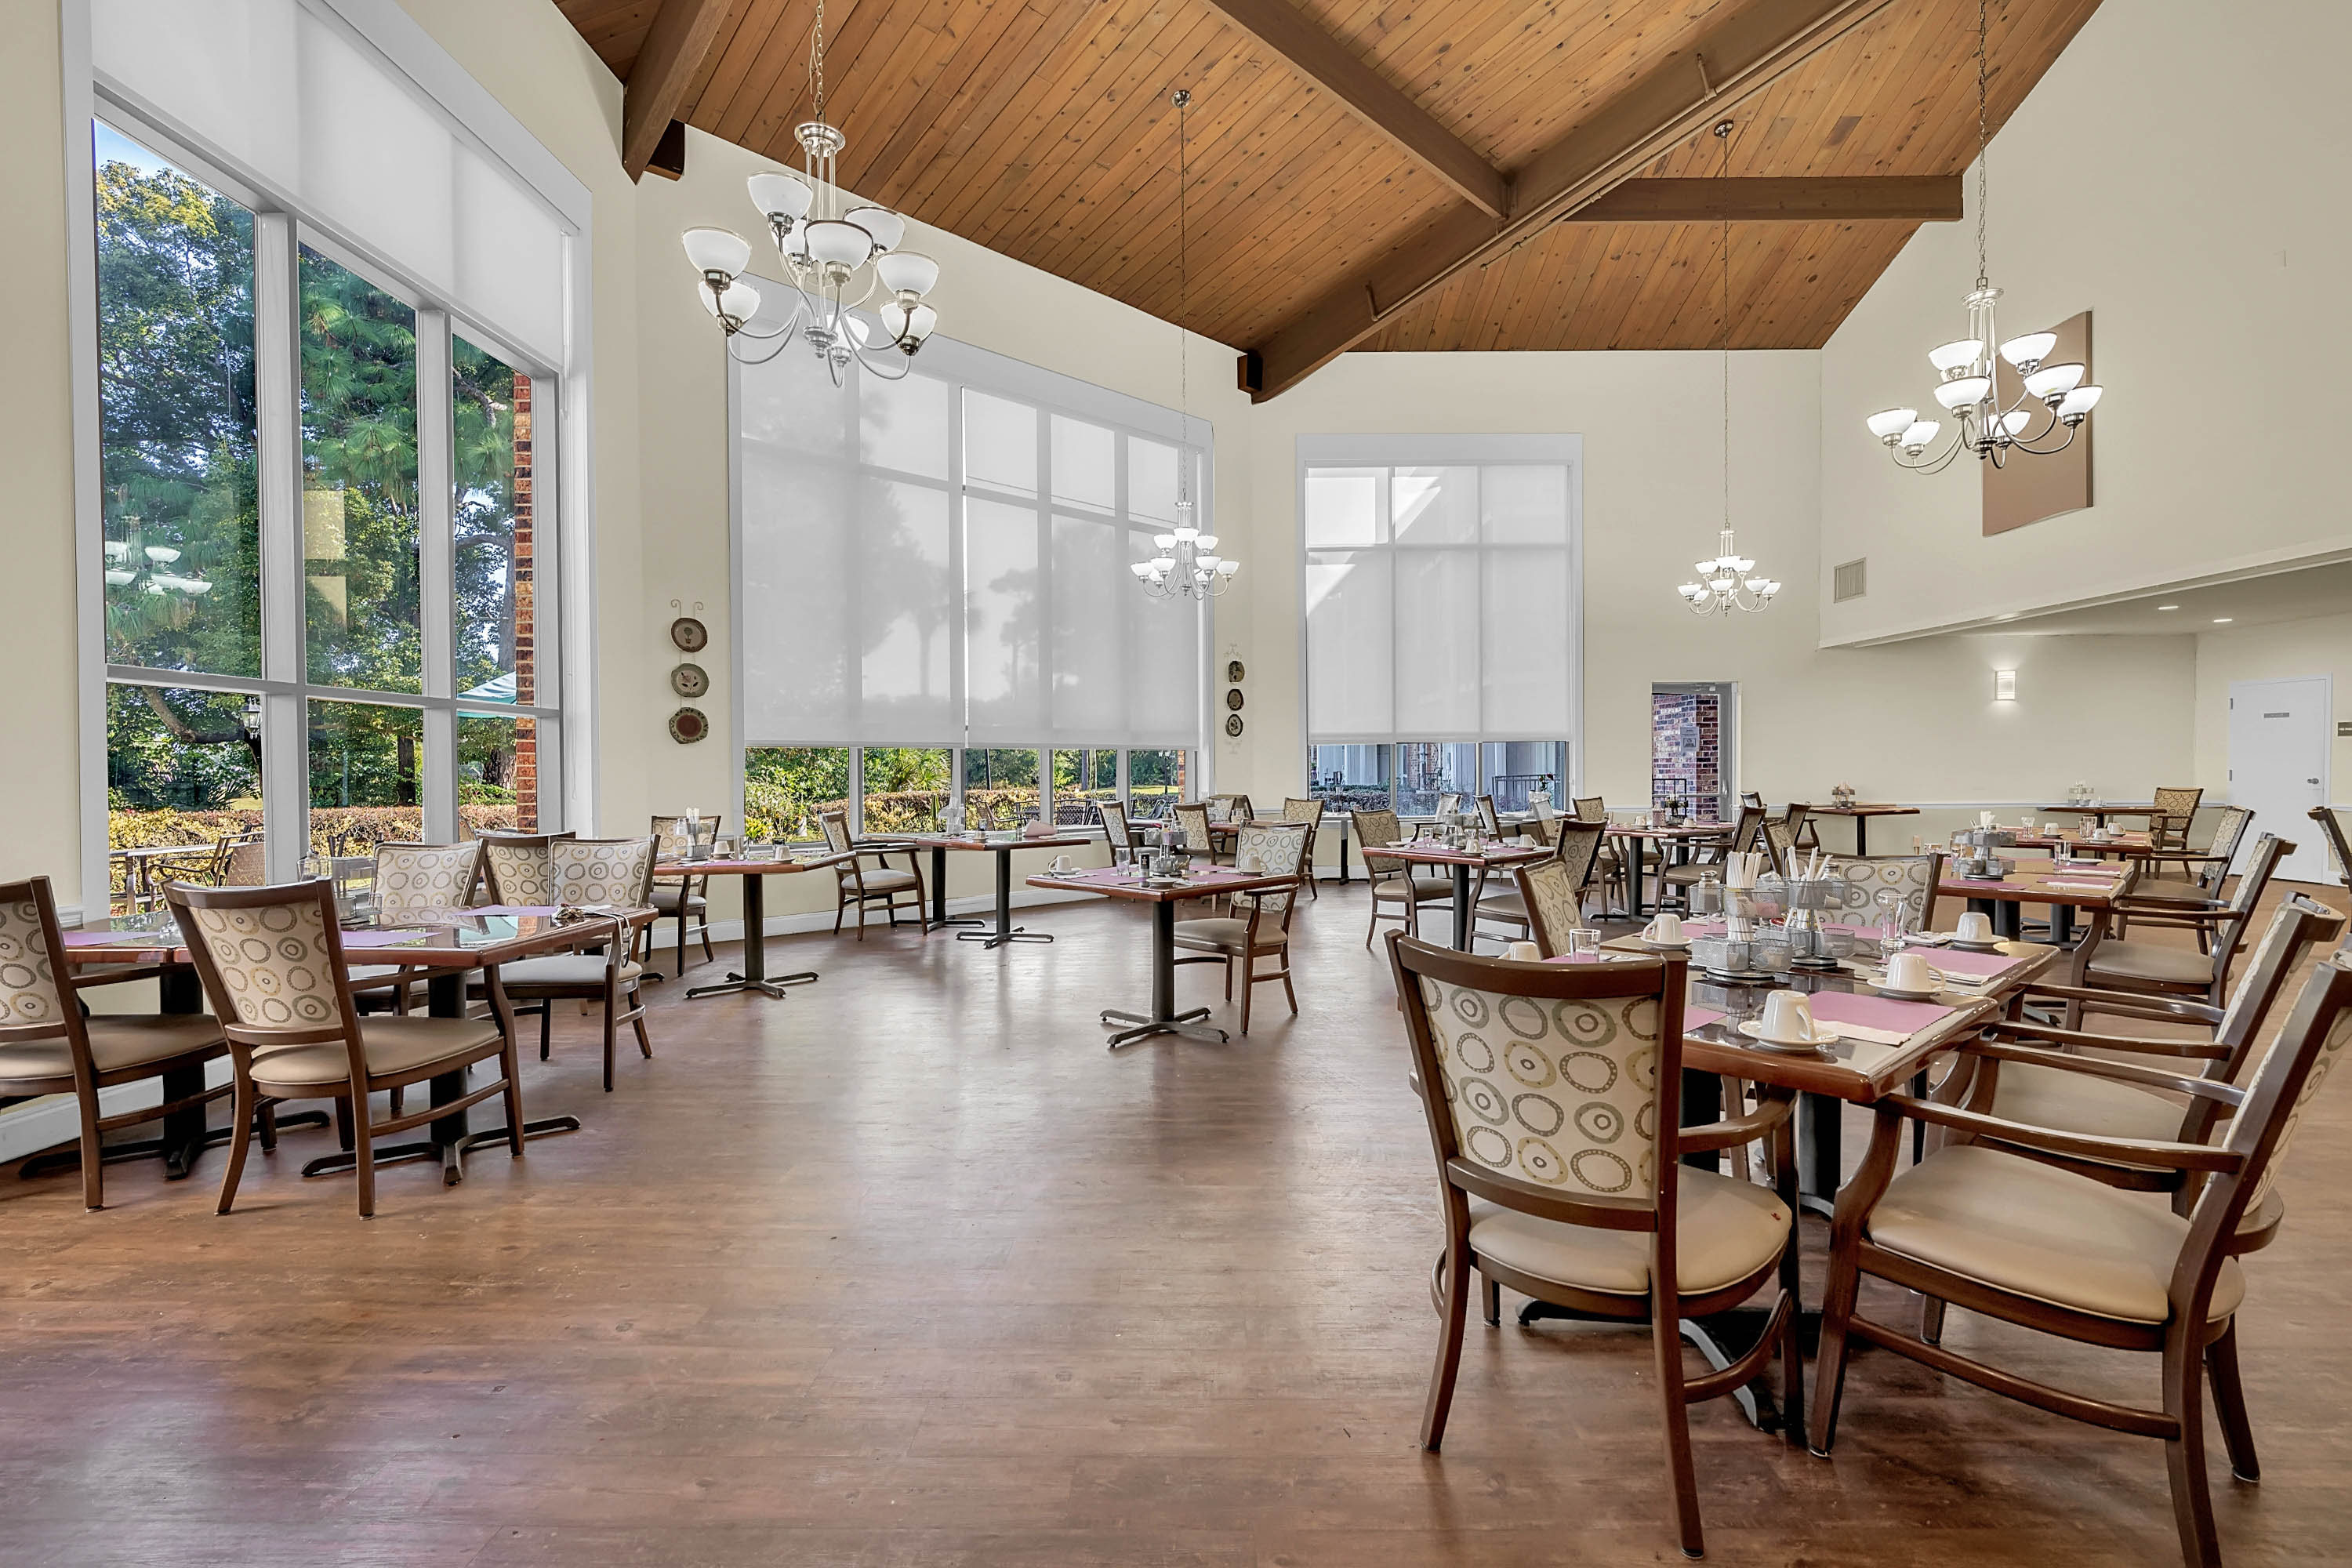 Dining room at Renaissance Retirement Center in Sanford, Florida